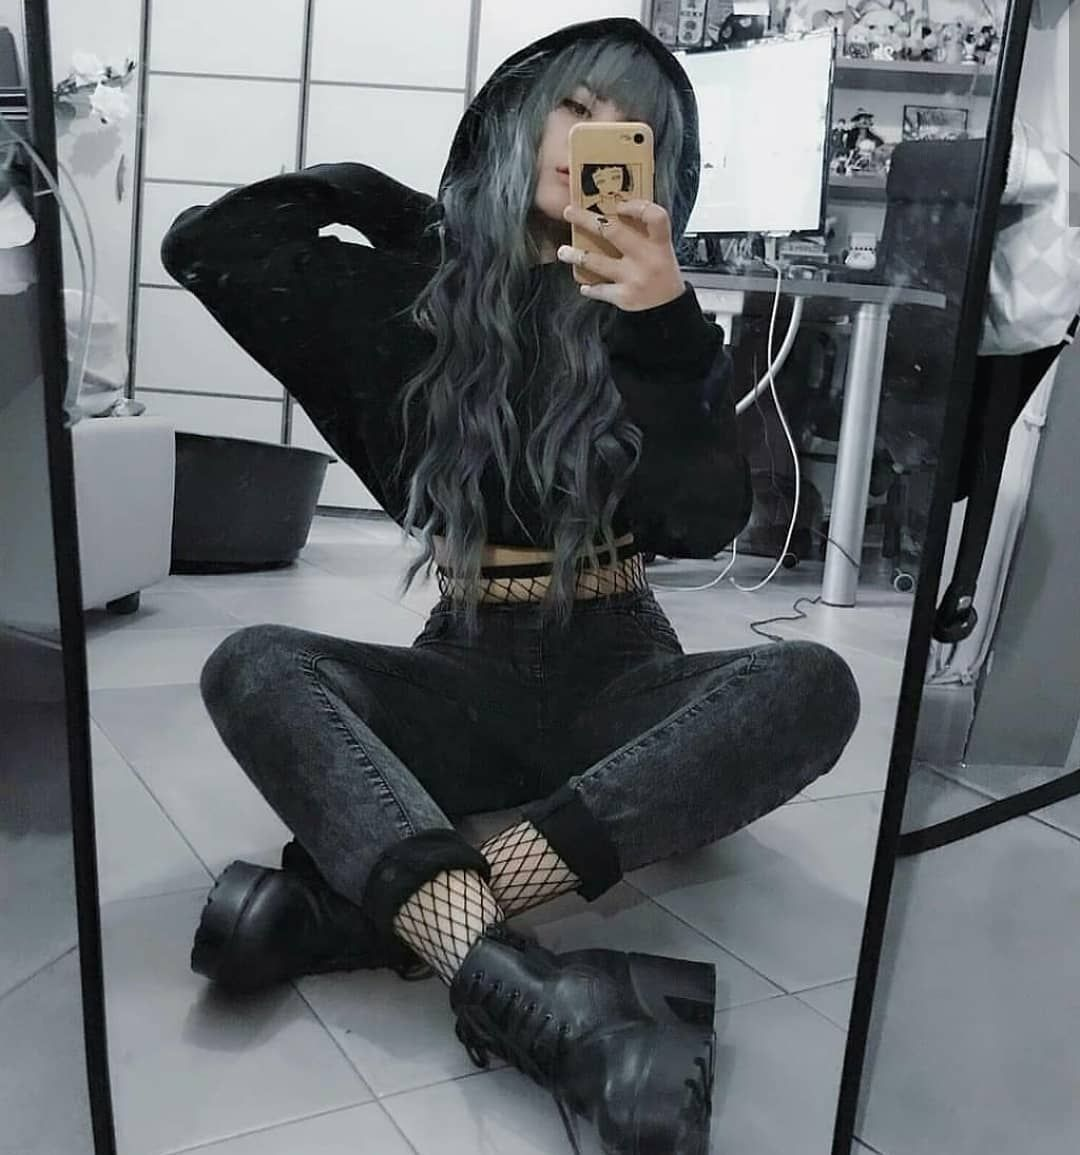 "Alternative Fashion ♡ on Instagram: ""#outfits 1, 2 or 3? via @rhuna.fox"" #grungegoth"